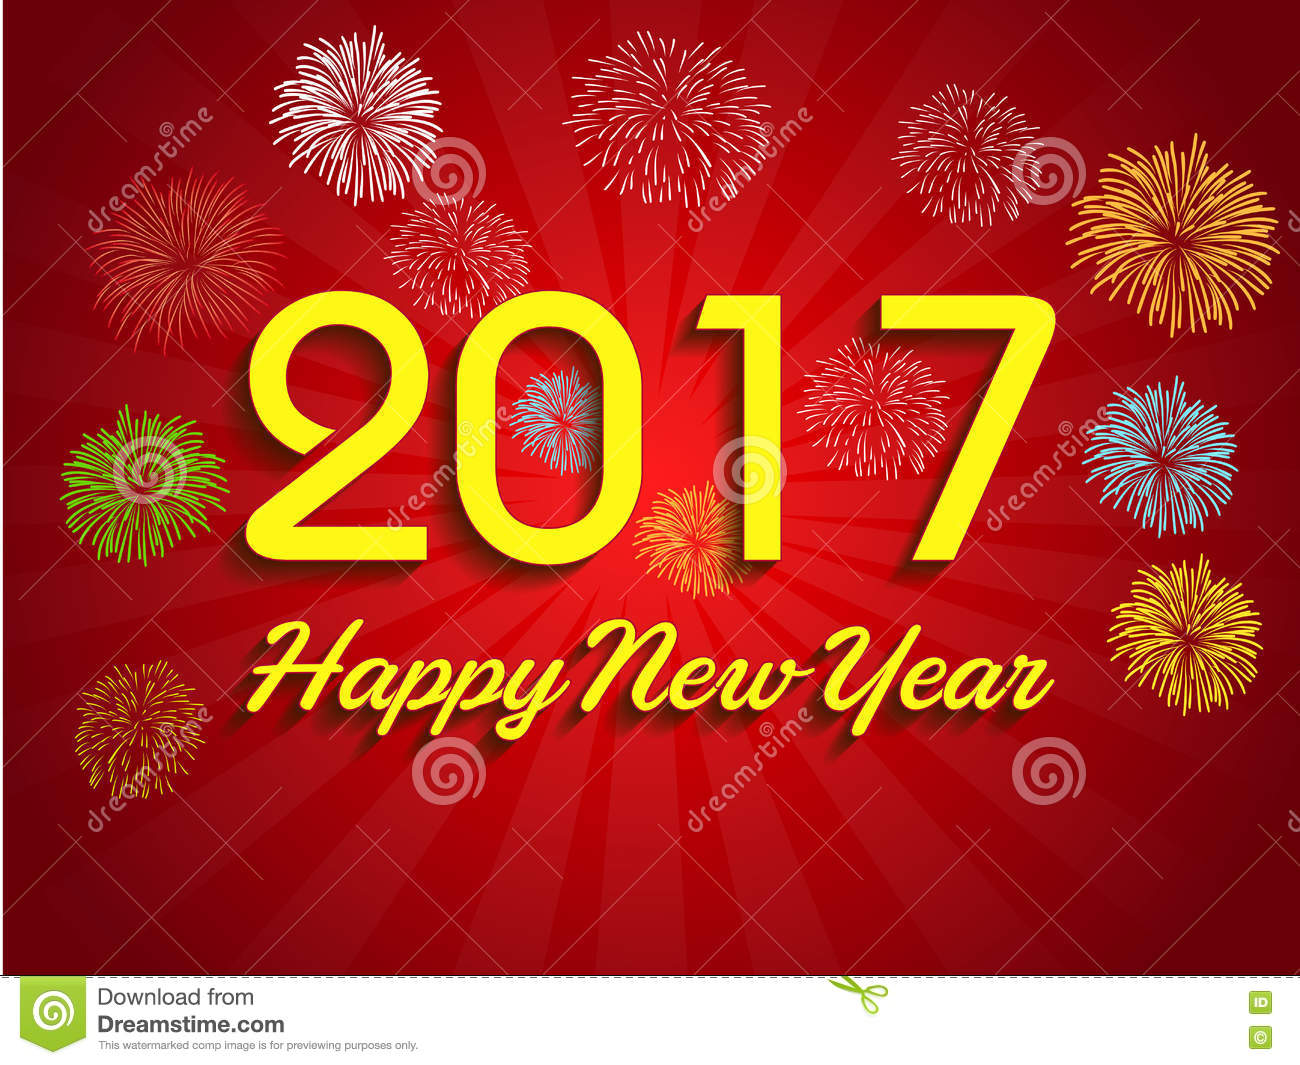 Fireworks Display For Happy New Year 2017 Stock Vector